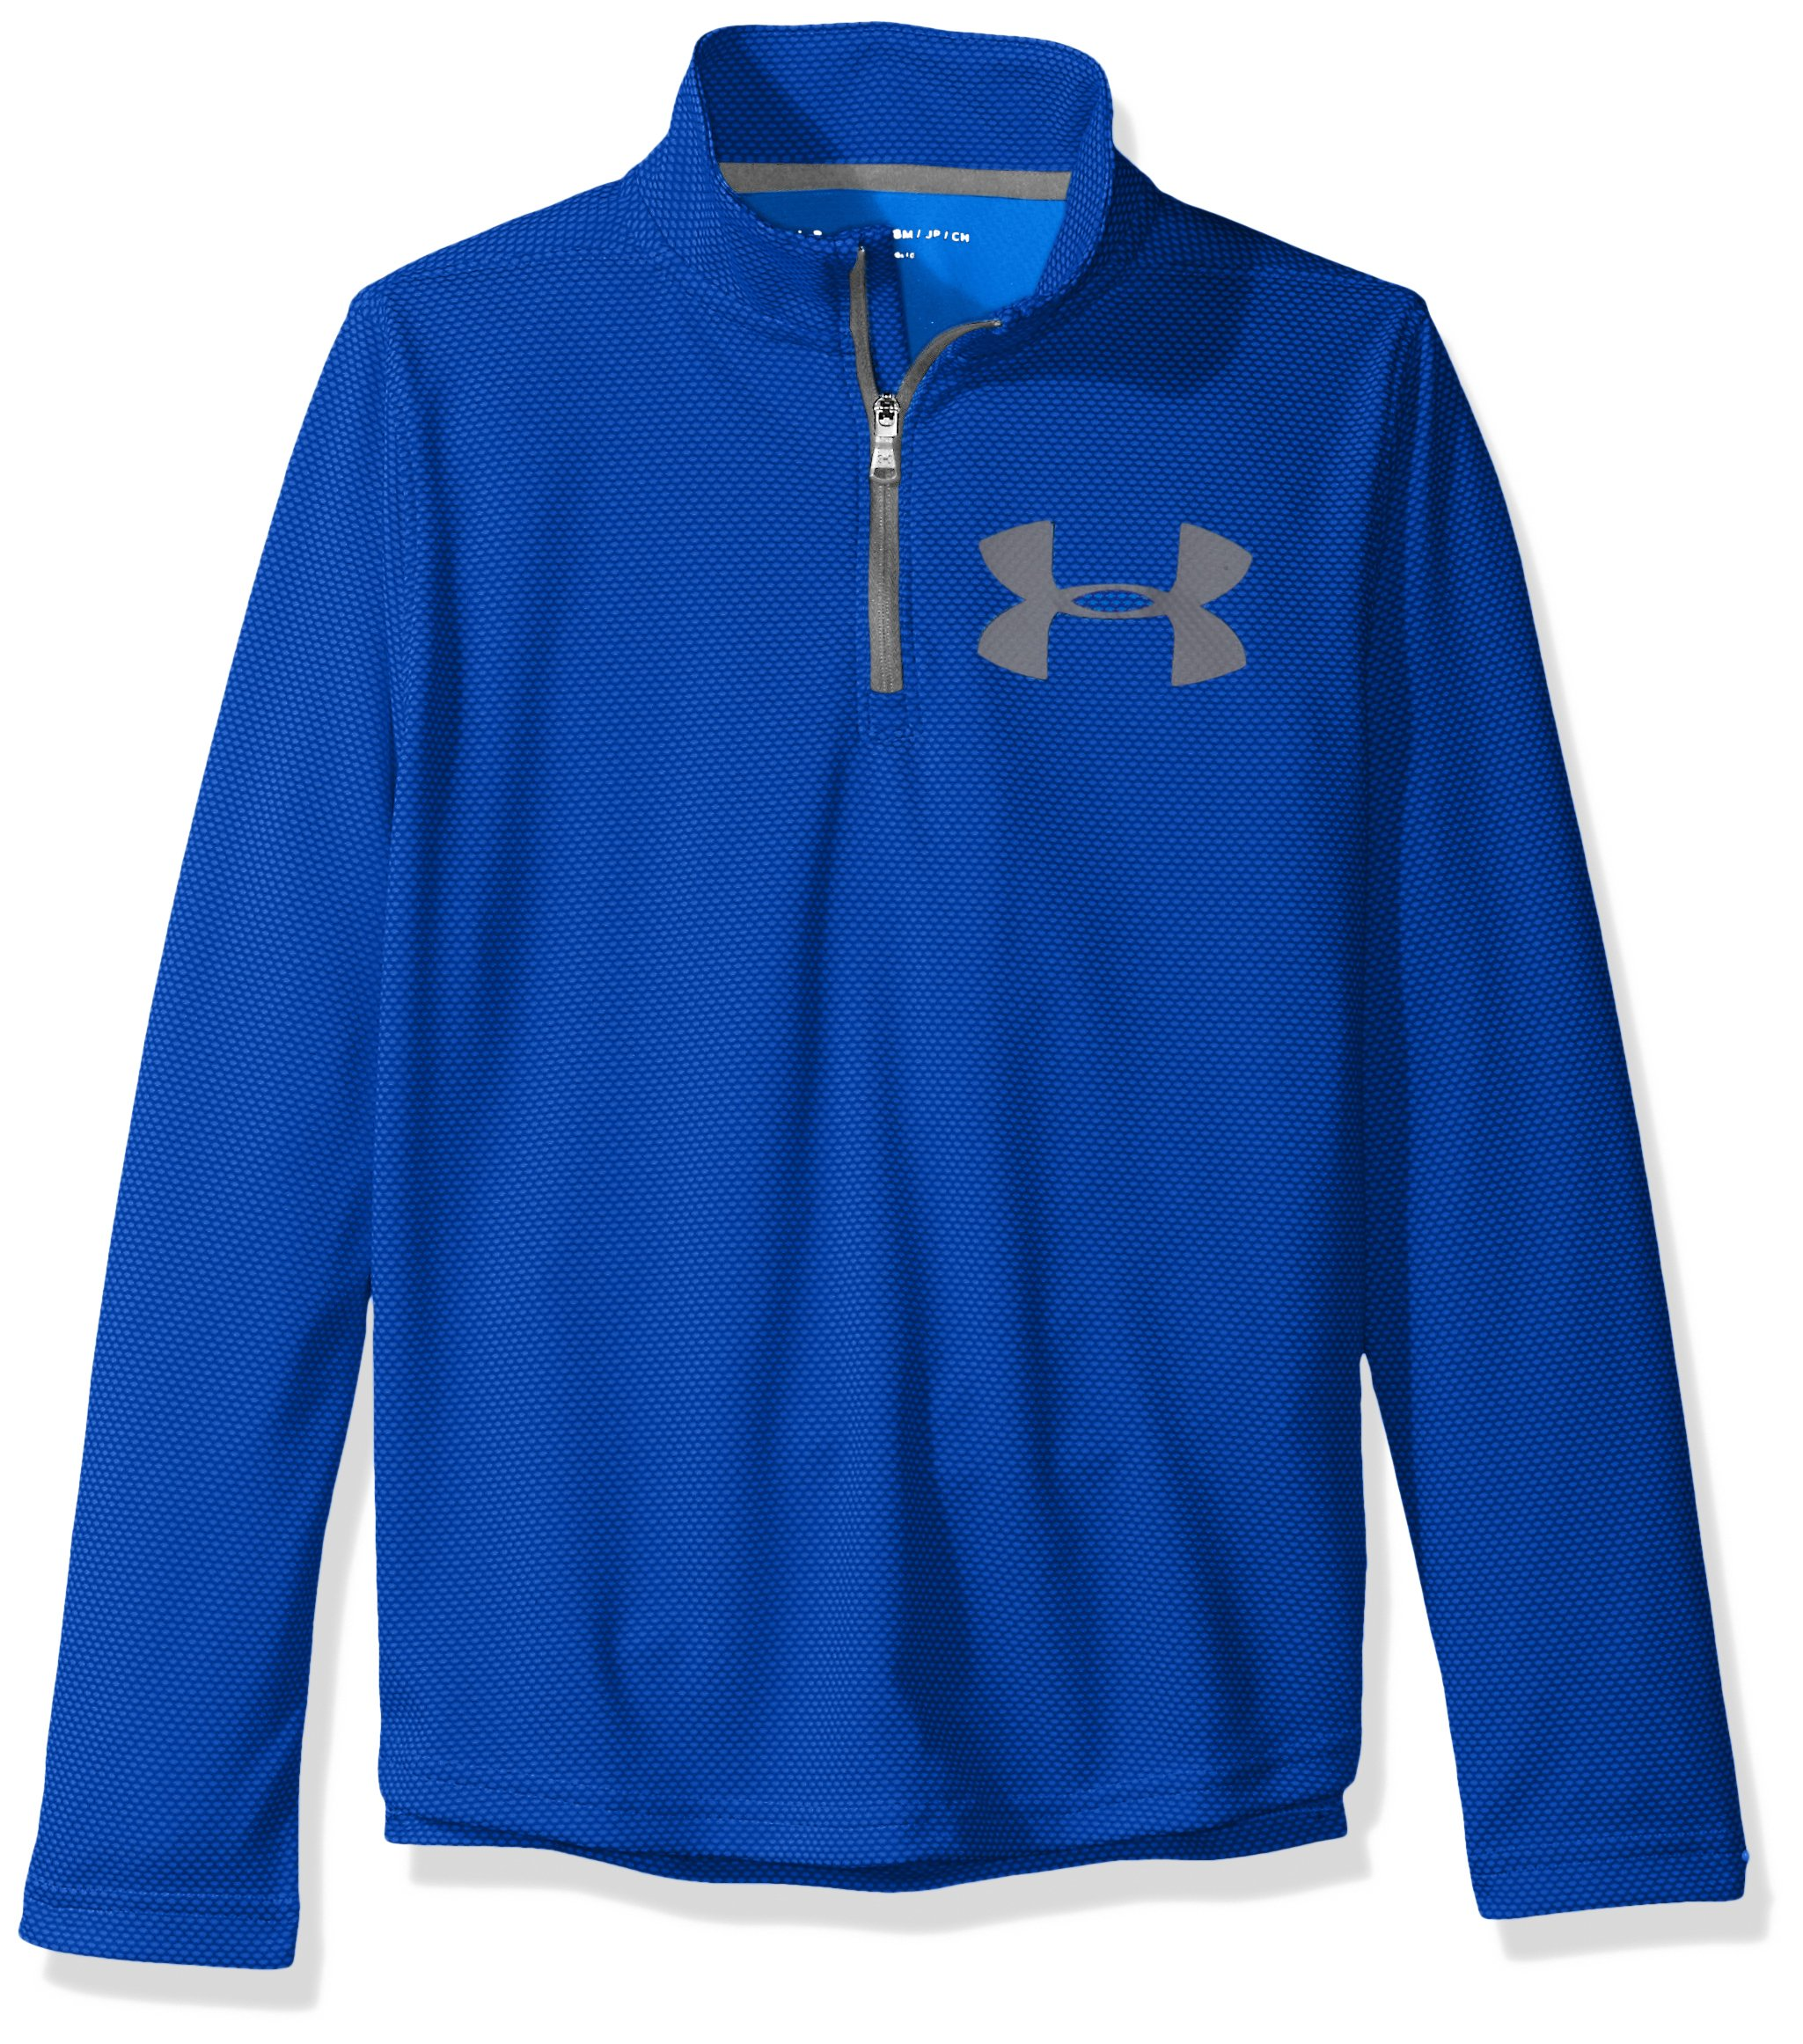 Under Armour Boys' Tech Textured ¼ Zip,Ultra Blue /Graphite, Youth Small by Under Armour